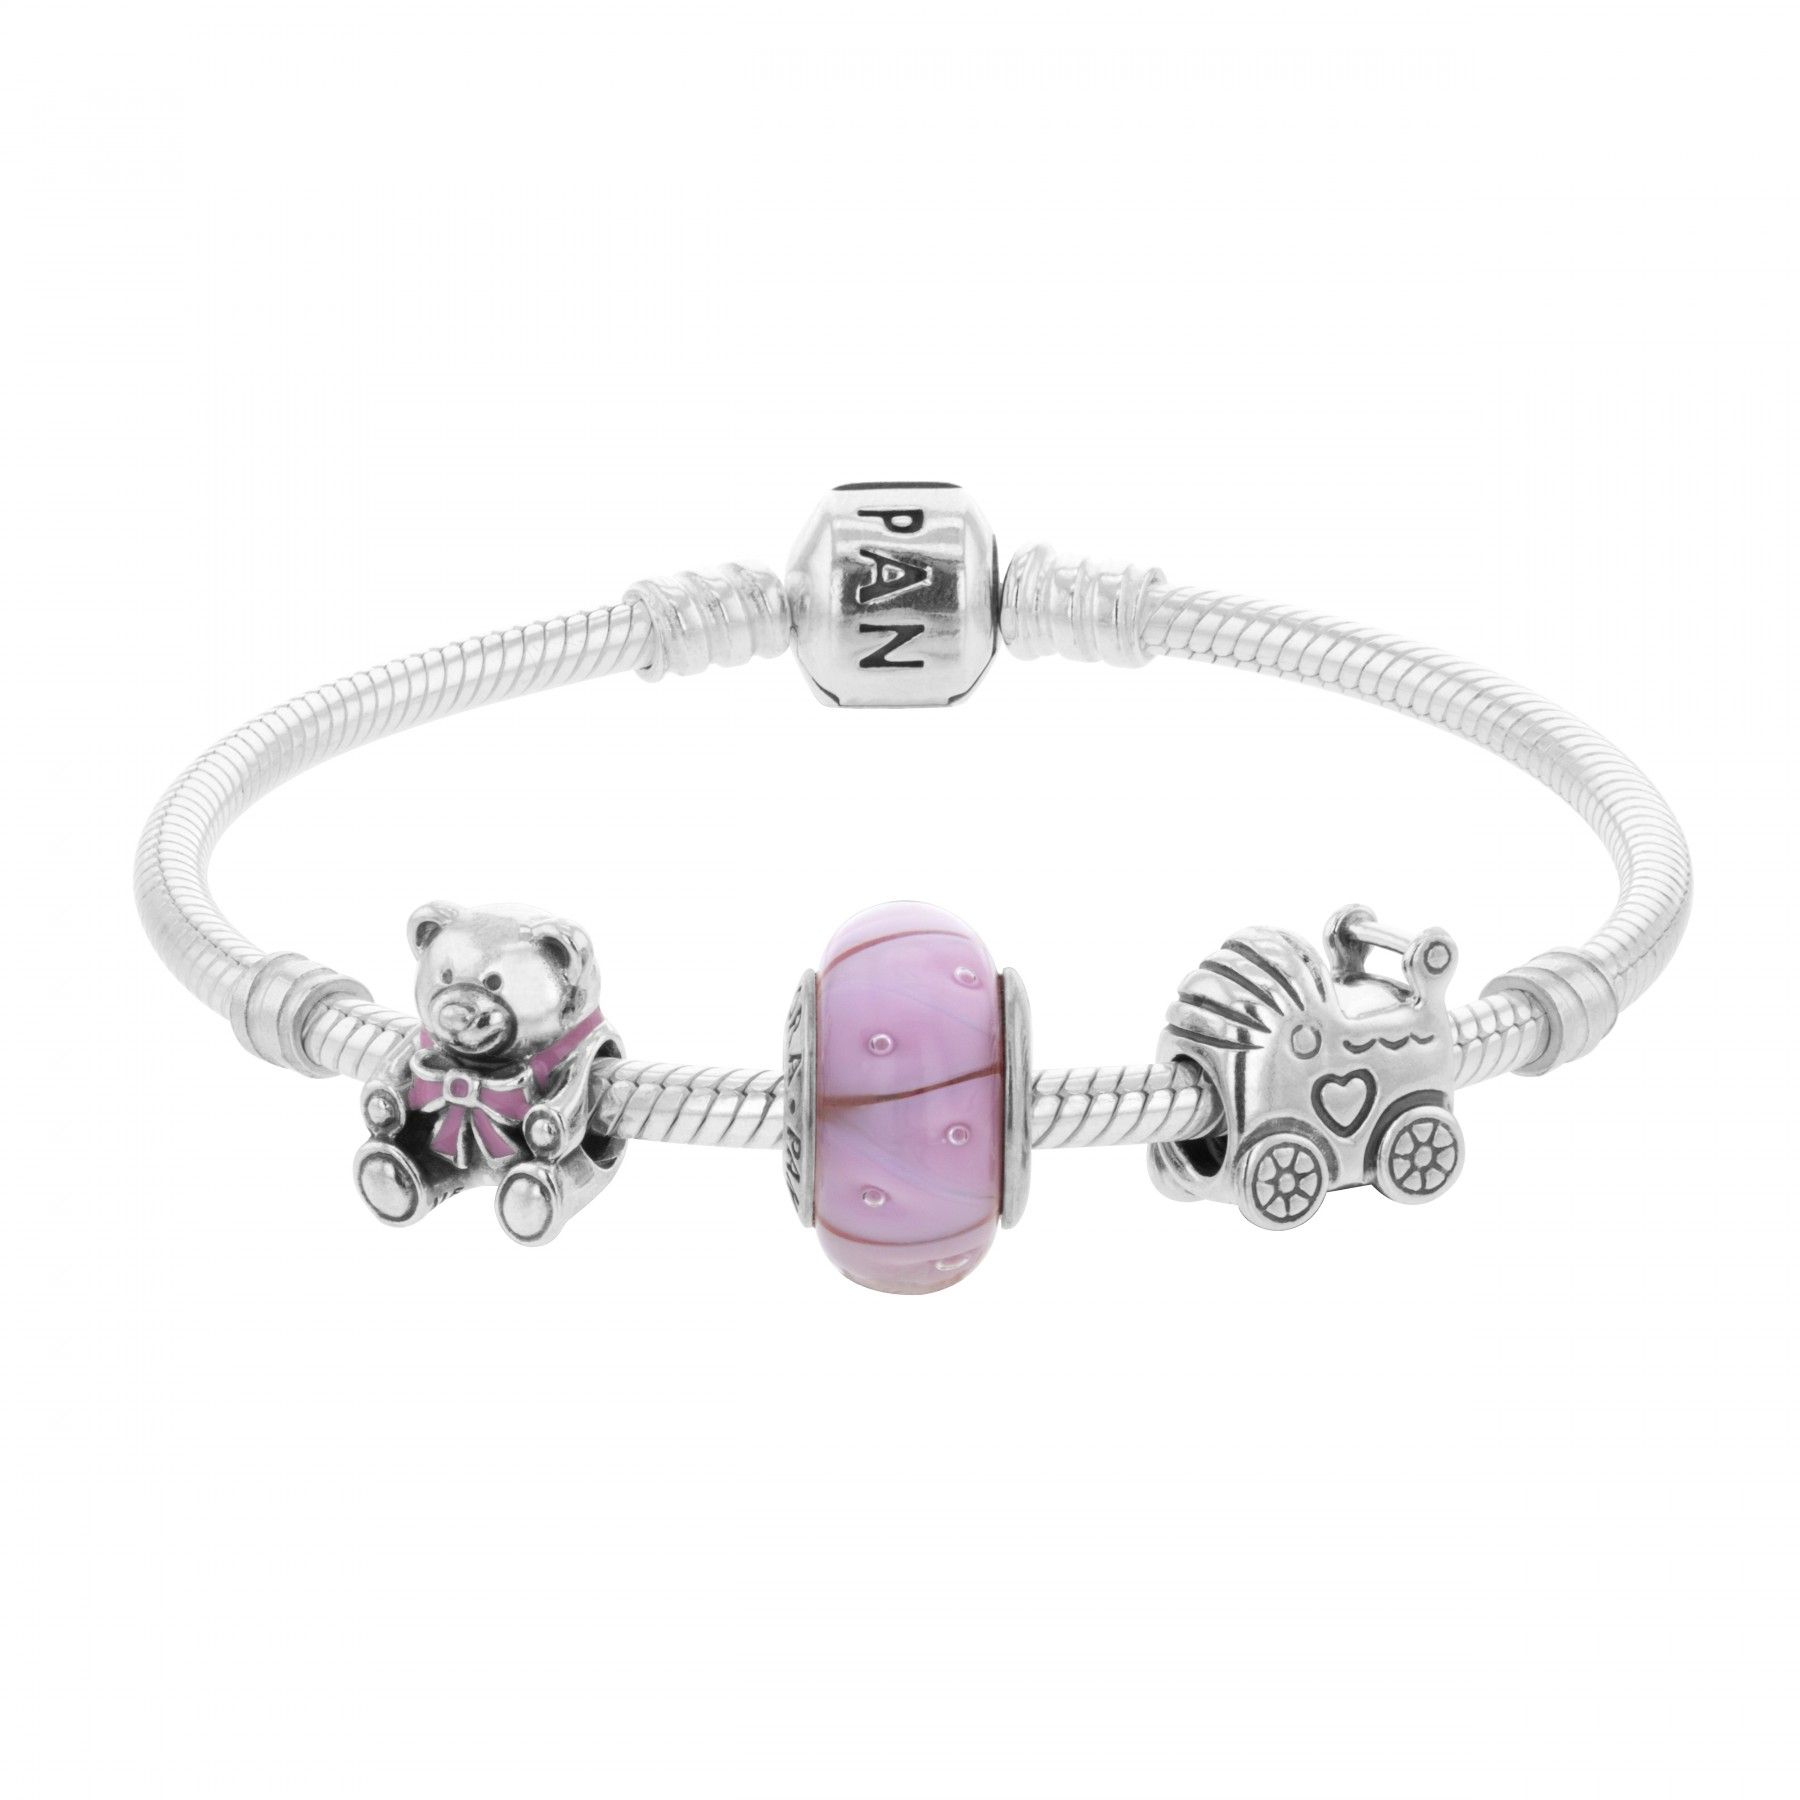 the charm bangle of review winter pandora feature heart bangles charms theartofpandora art more